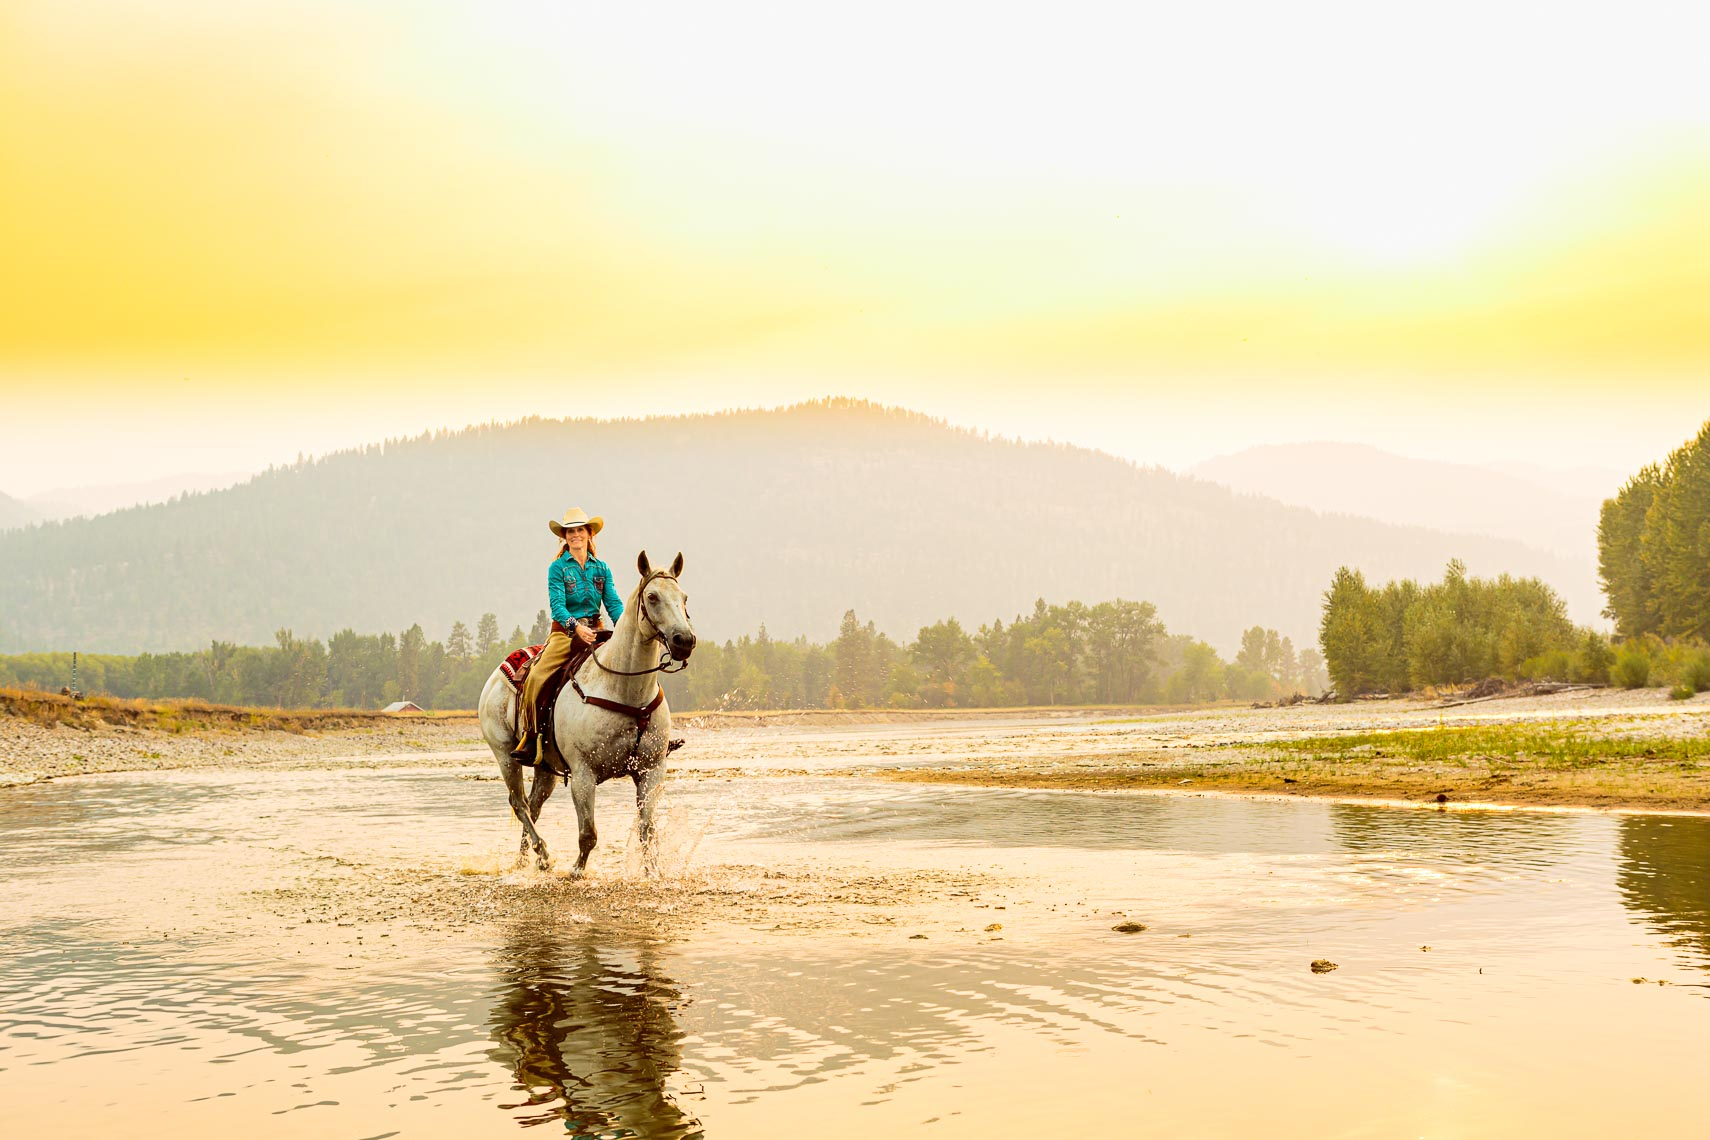 Cowgirl Riding Horse in River | Photographer Michael DeYoung